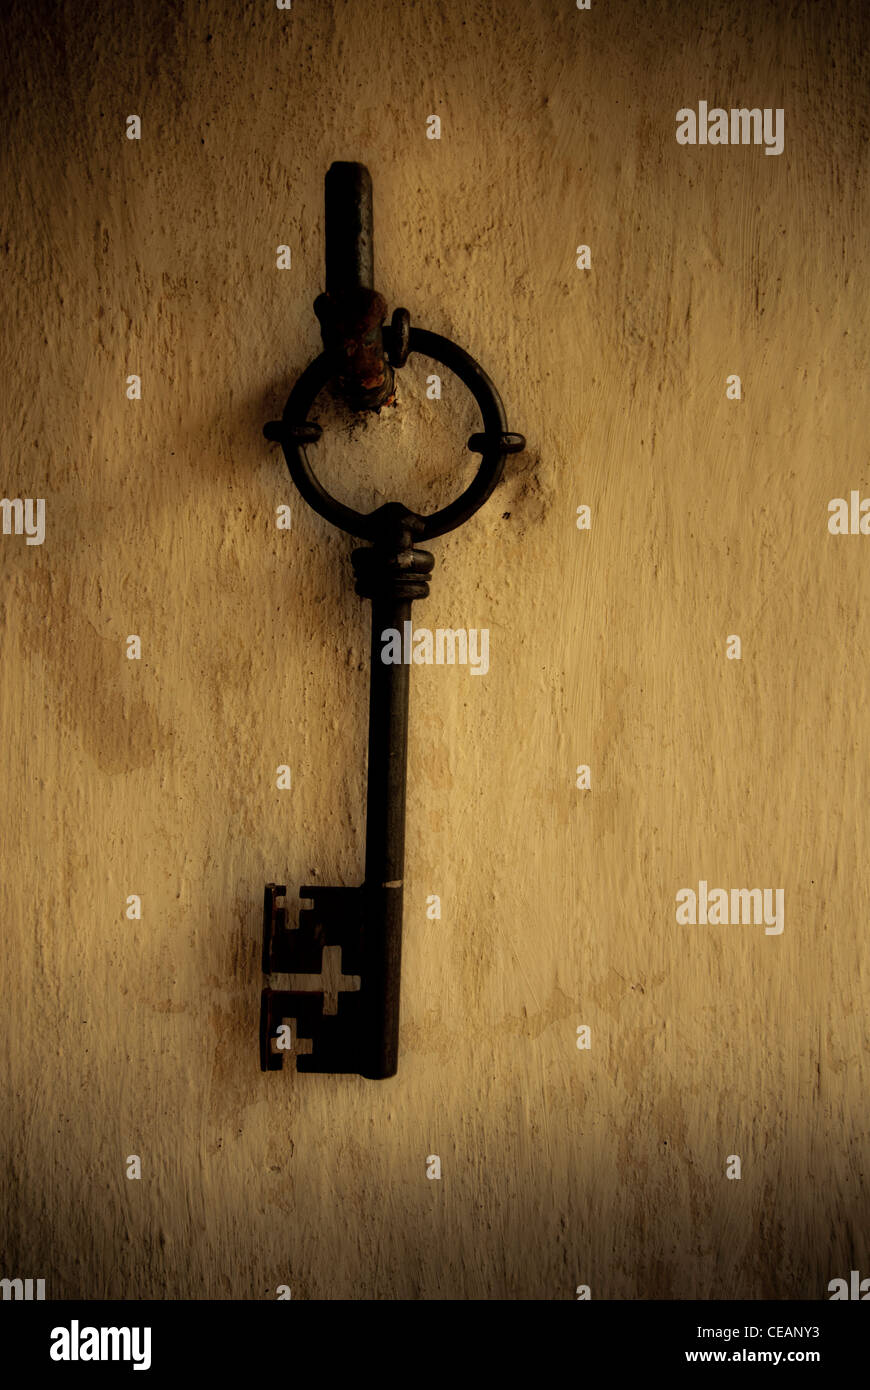 Crosses Hanging On Wall Stock Photos & Crosses Hanging On Wall Stock ...